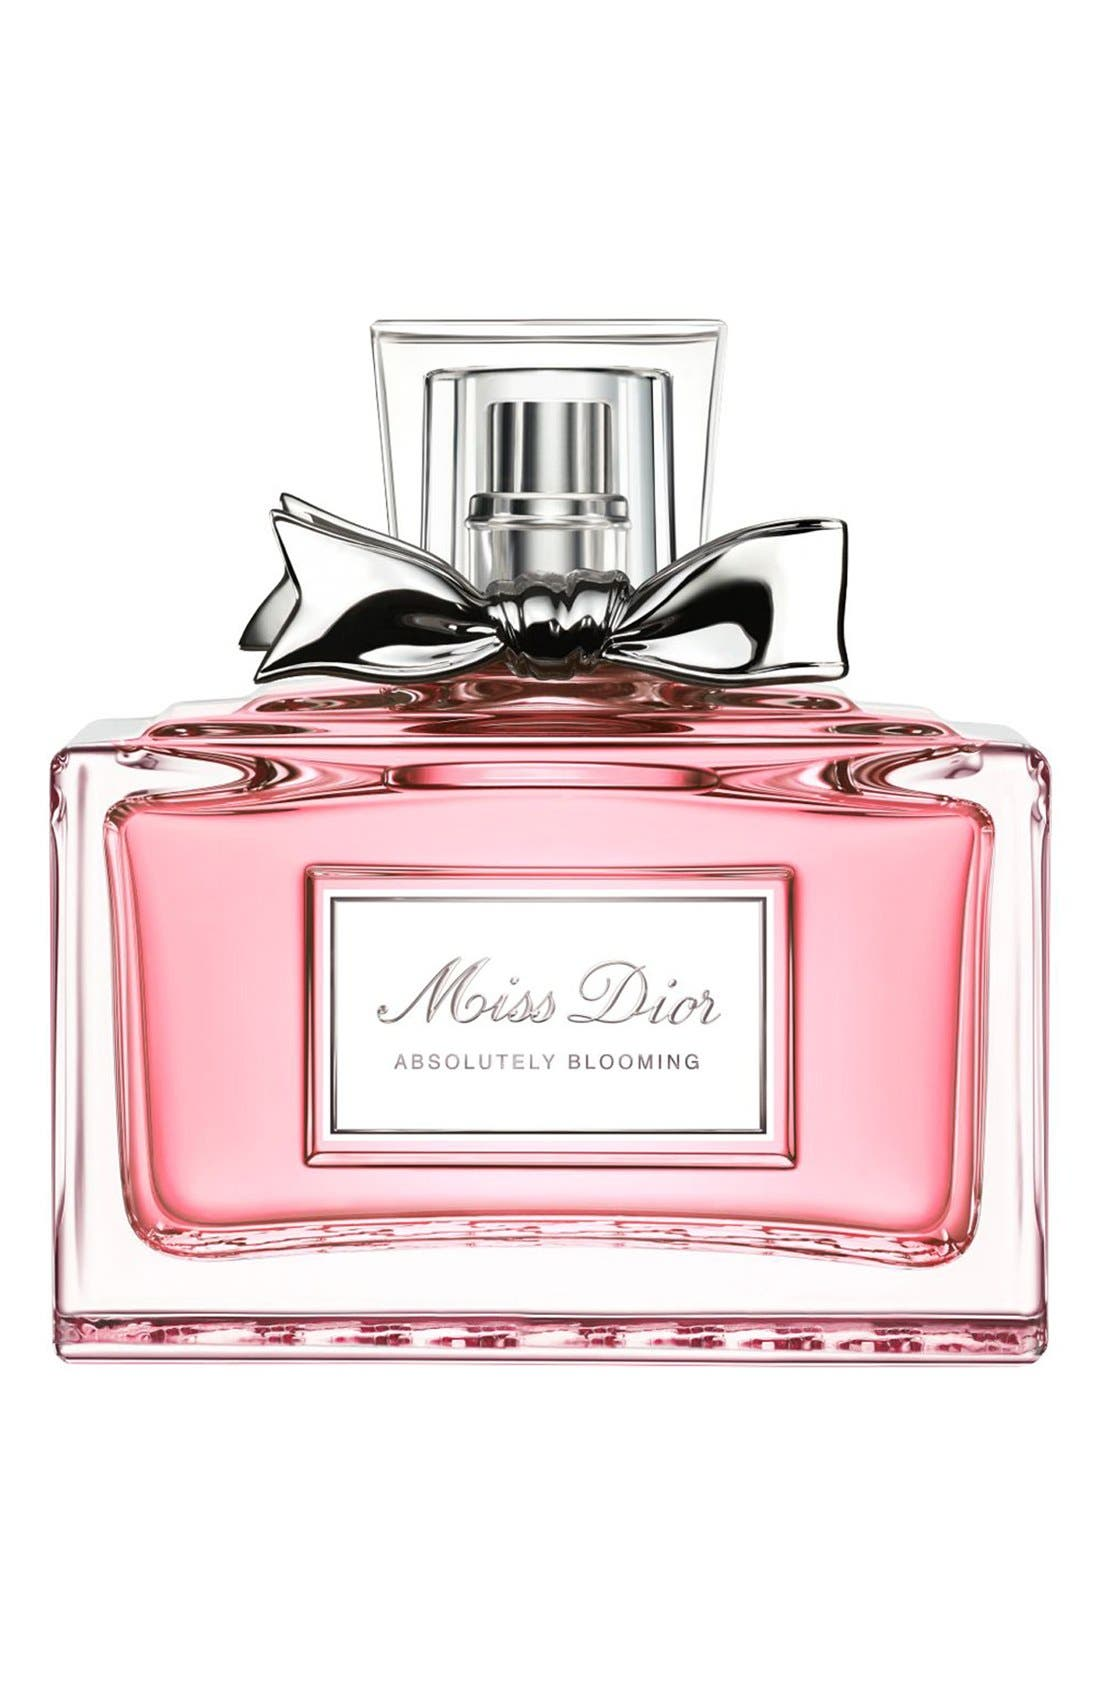 Dior 'Miss Dior Absolutely Blooming' Eau de Parfum